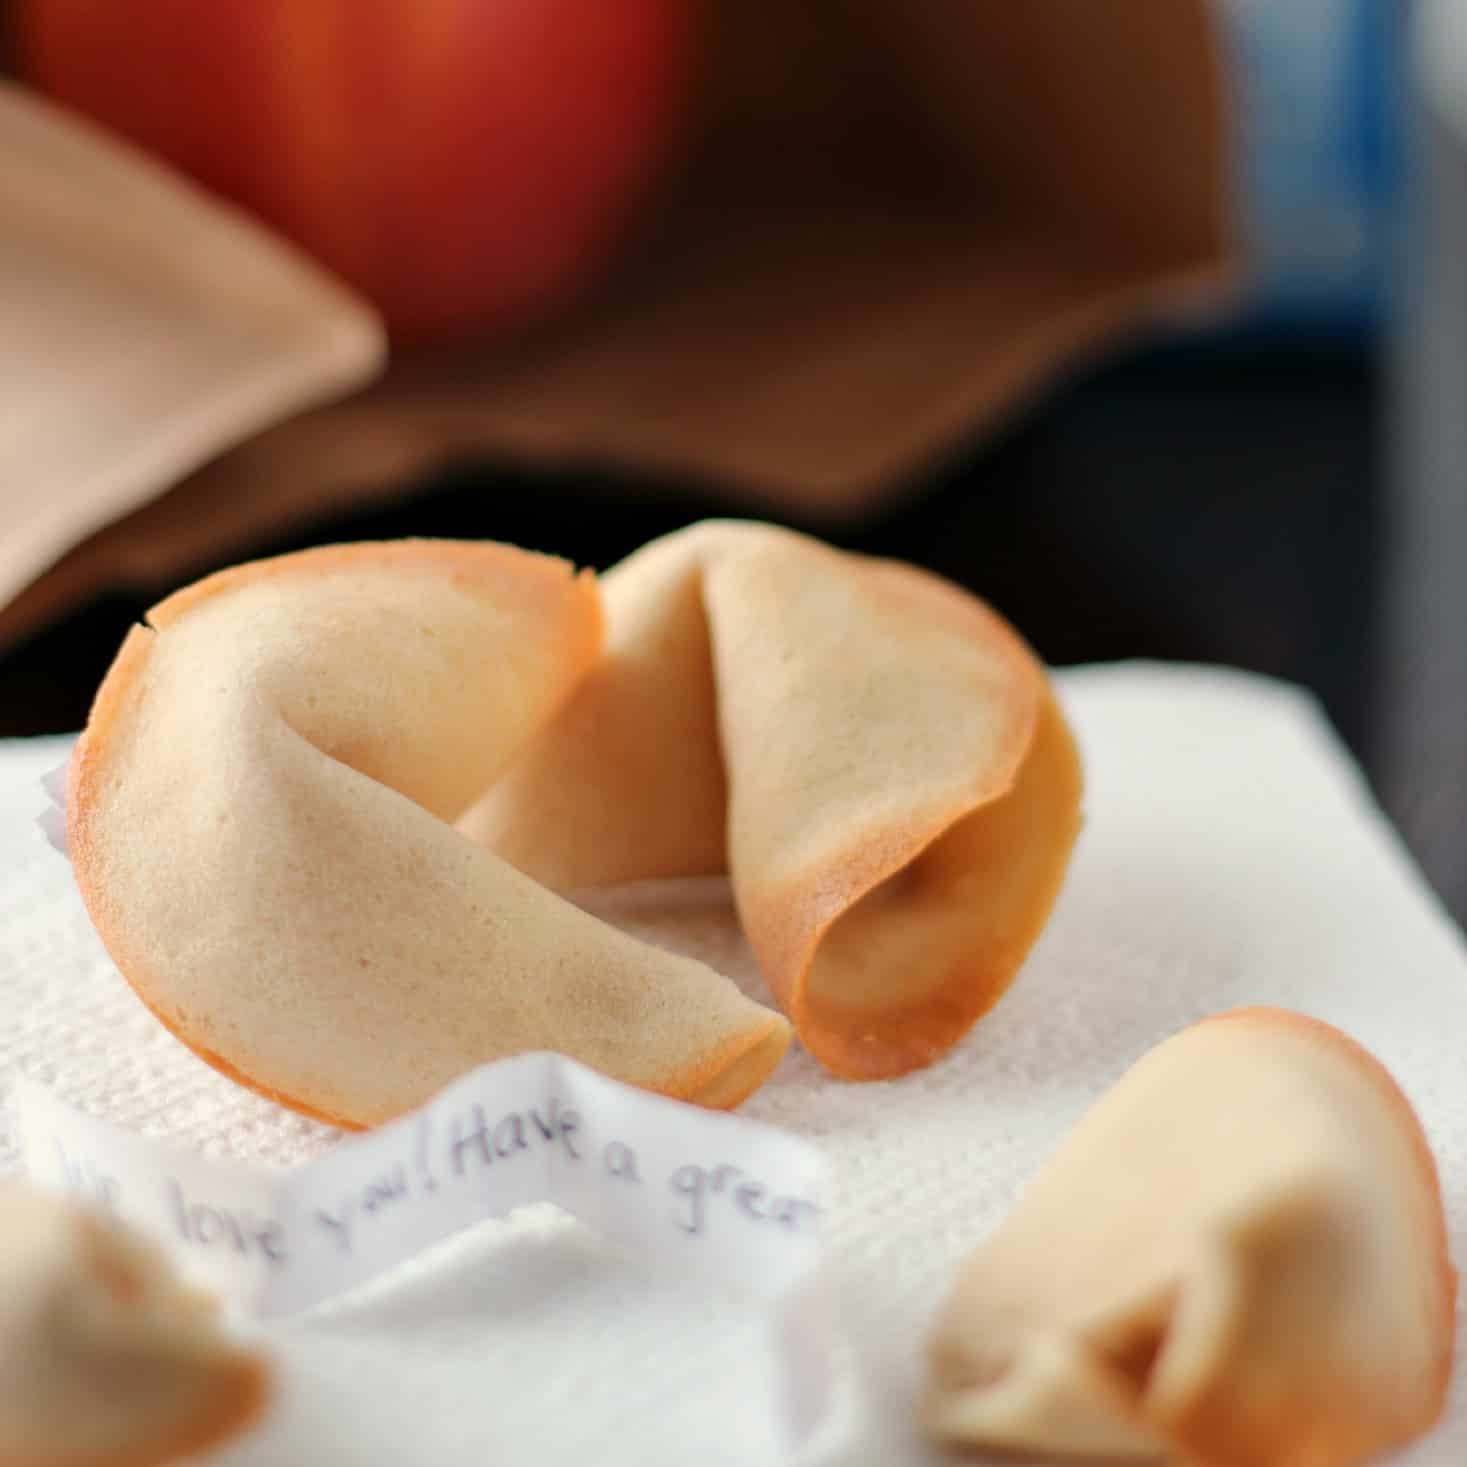 Homemade fortune cookies with personalized messages